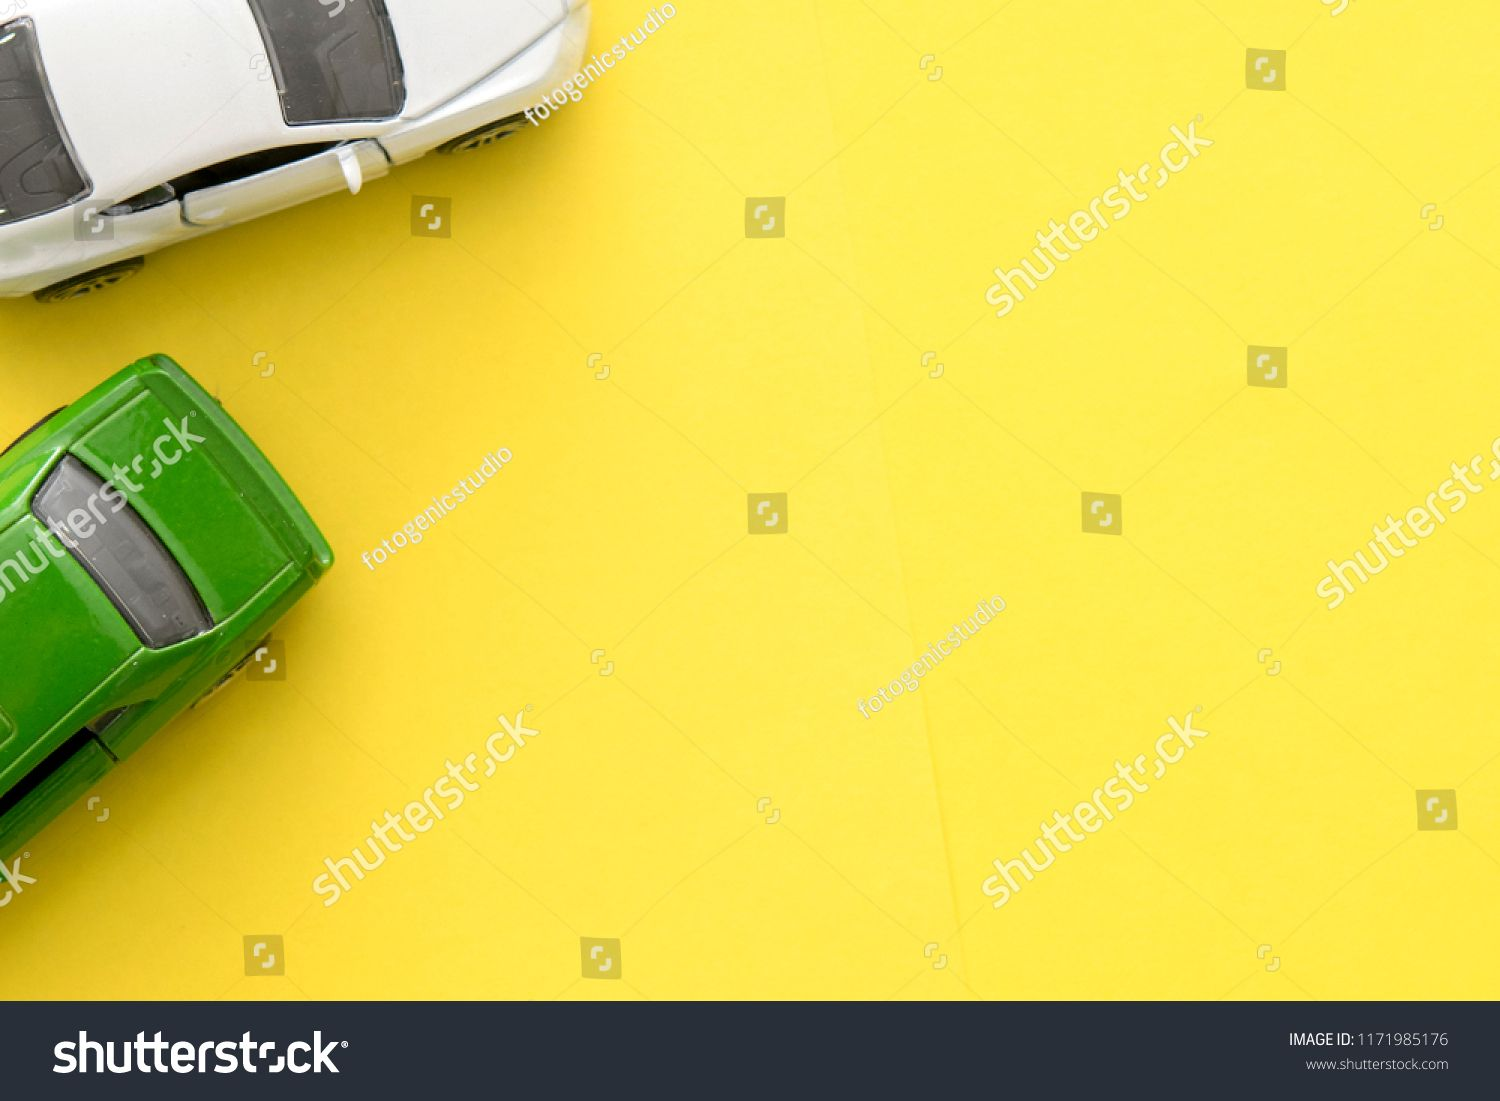 miniature toy cars on the yellow background top tomobile and transportation concept